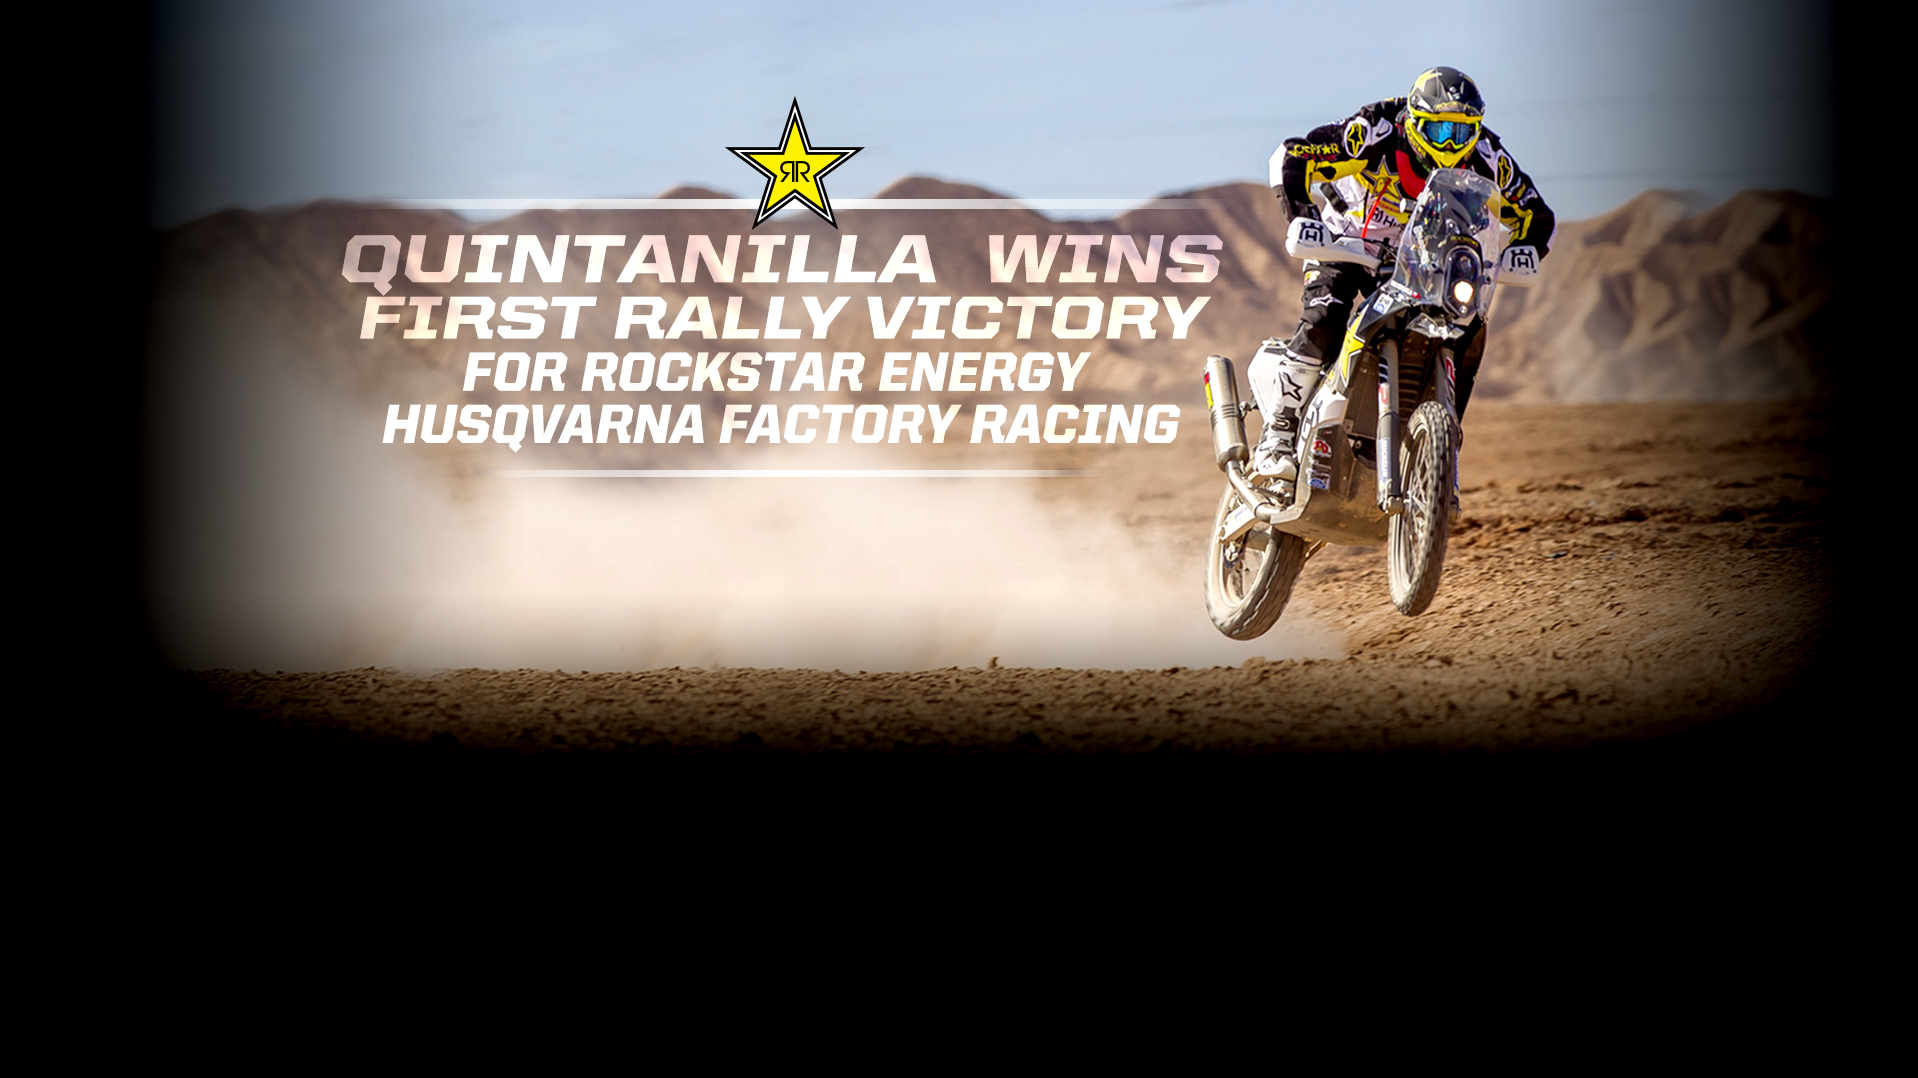 Quintanilla wins first rally victory